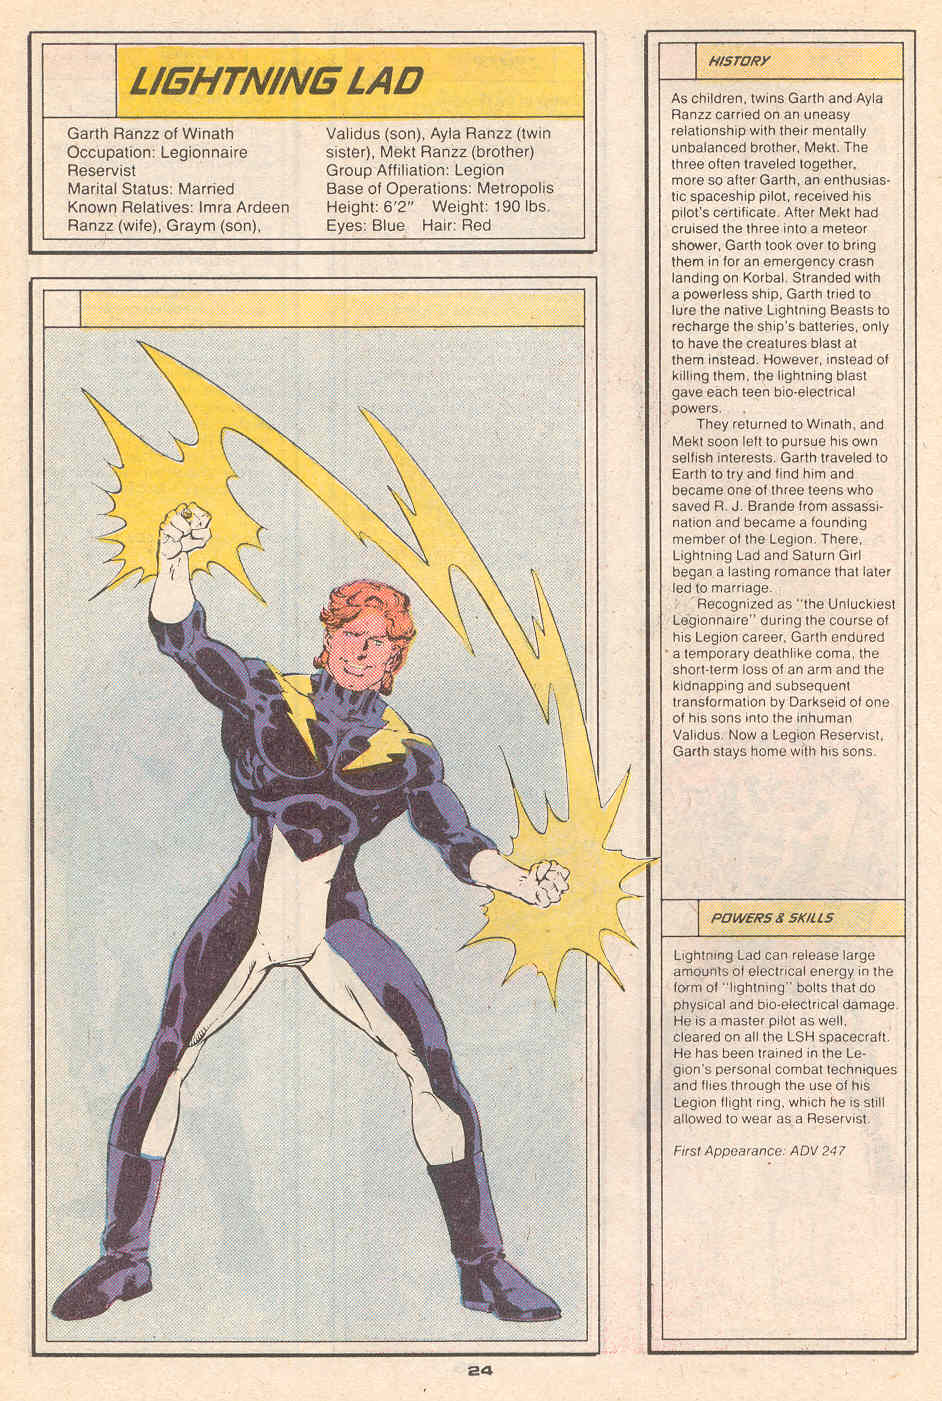 Lightning Lad by Greg LaRocque and Bob Smith - Who's Who in the Legion of Super-Heroes #4